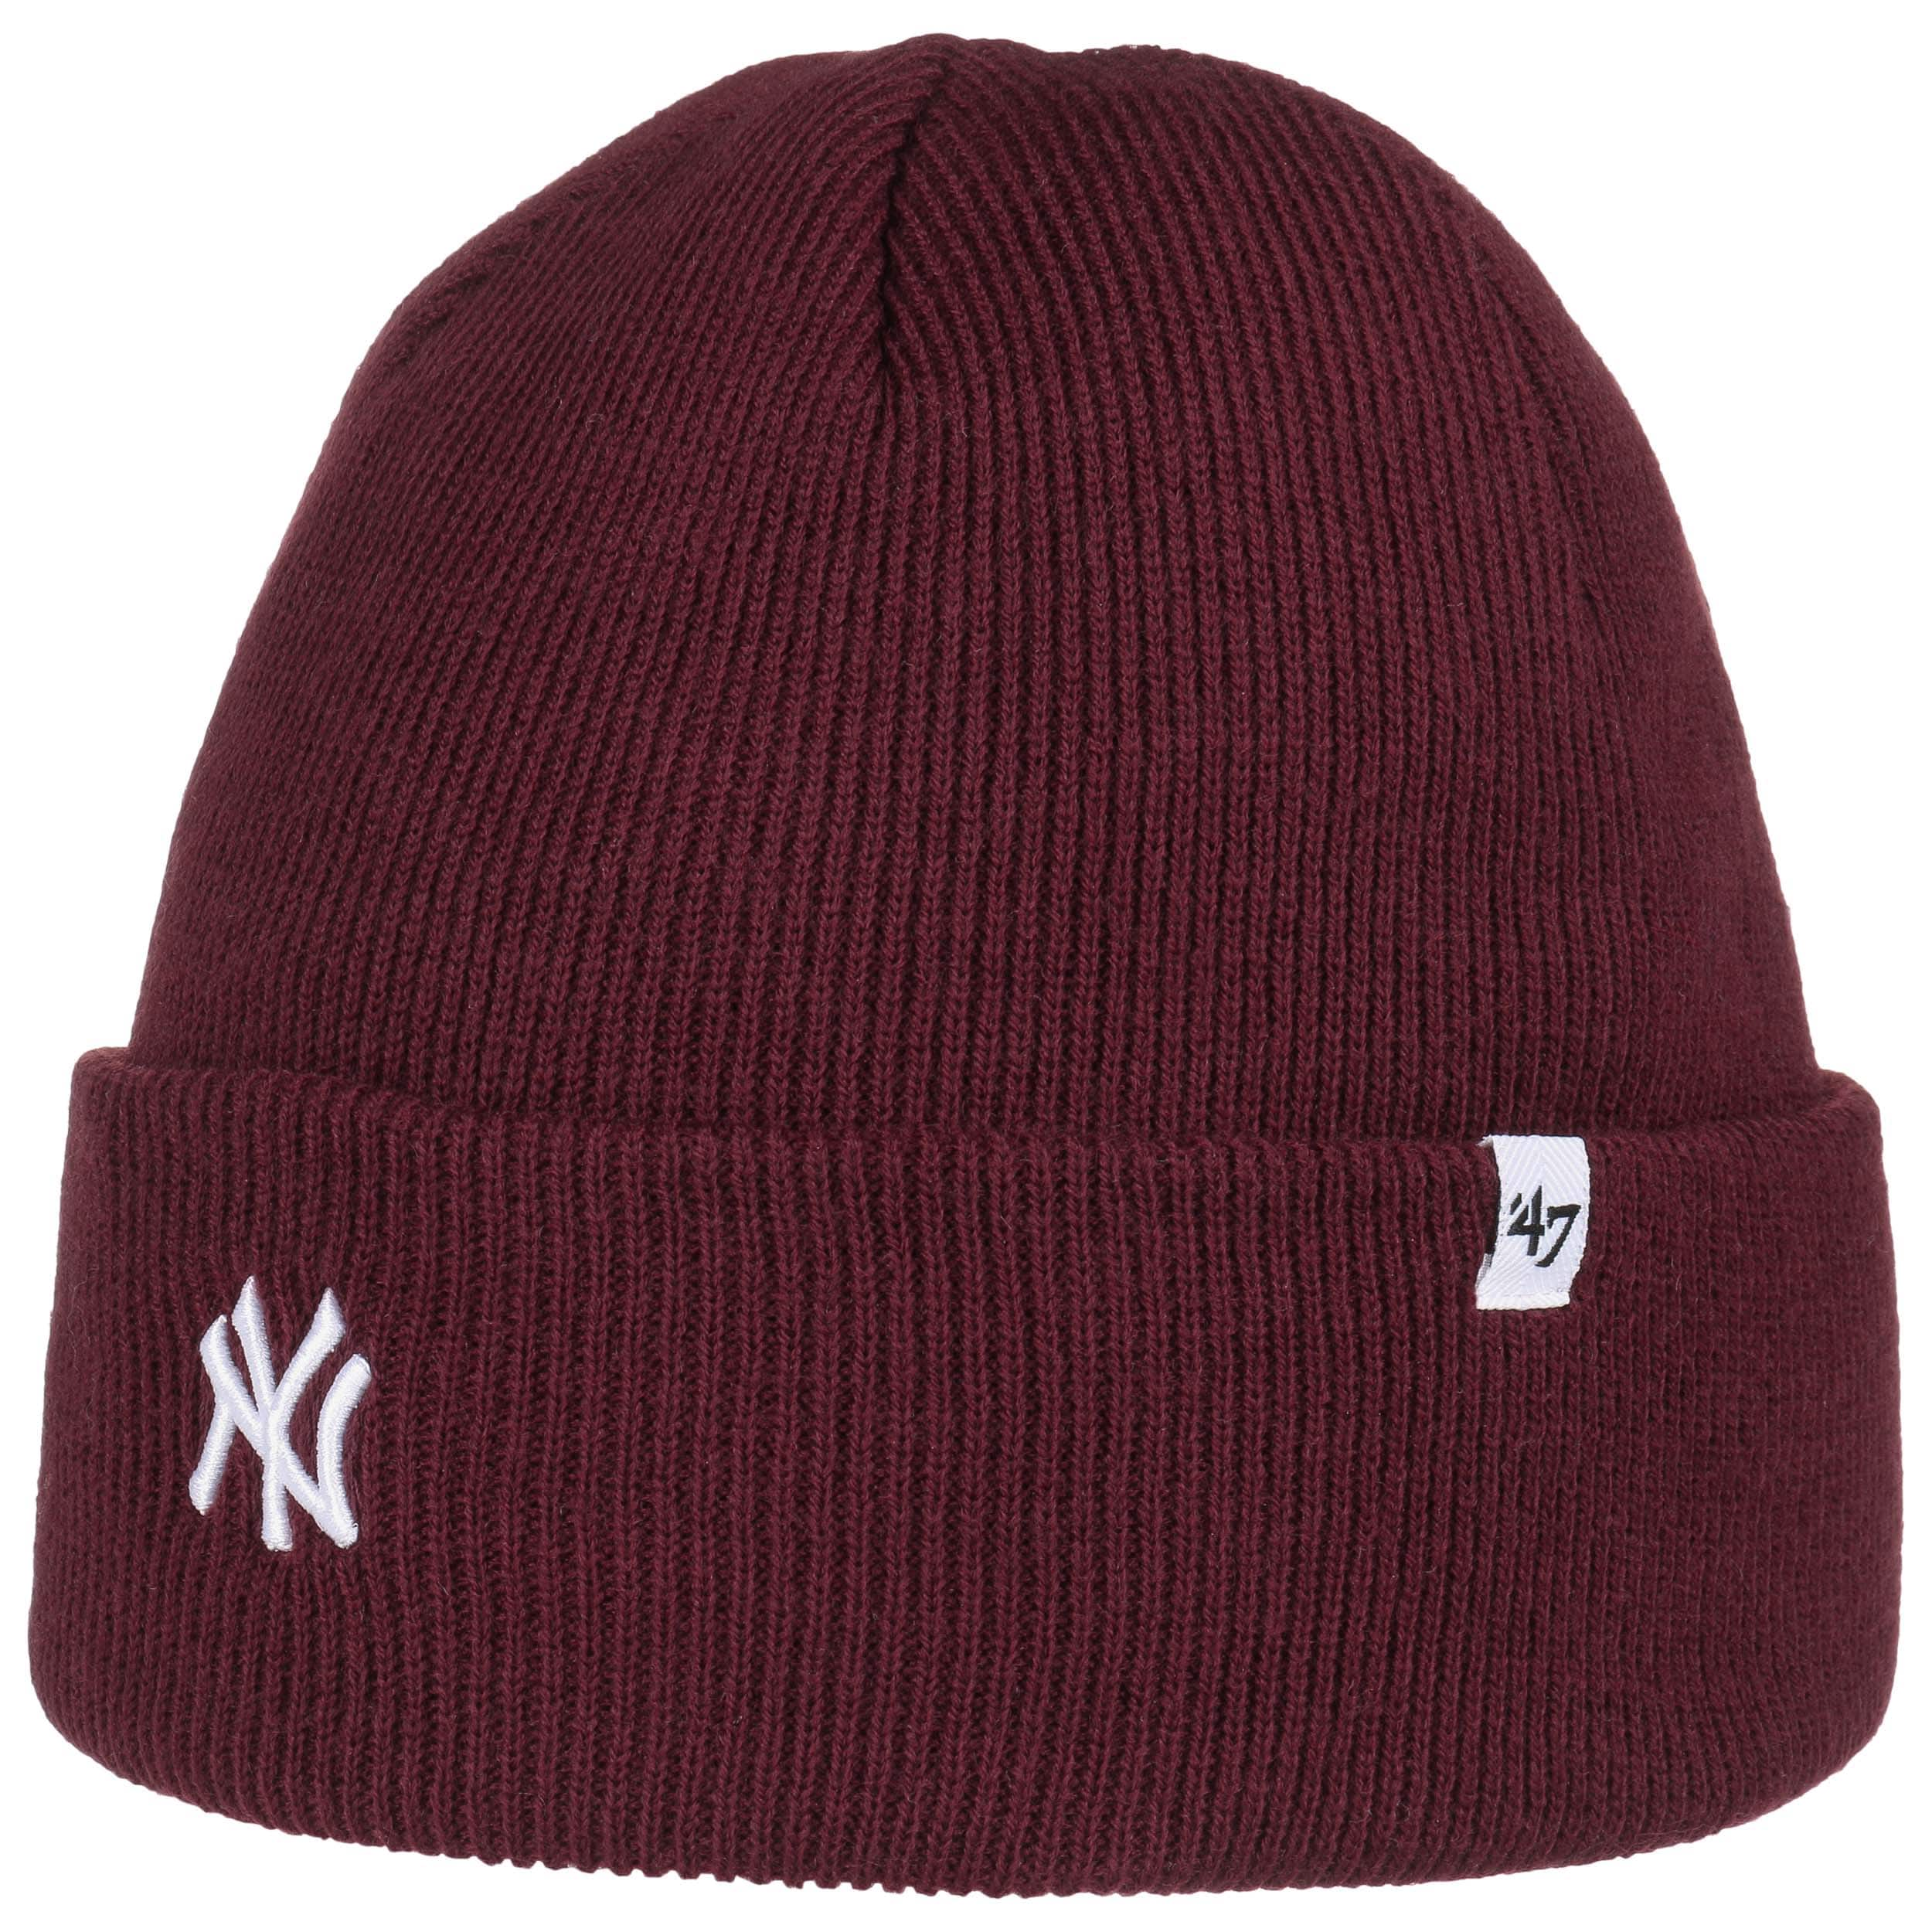 ... Berretto Beanie Centerfield Yankees by 47 Brand - rosso bordeaux 3 ... ed95f822976a